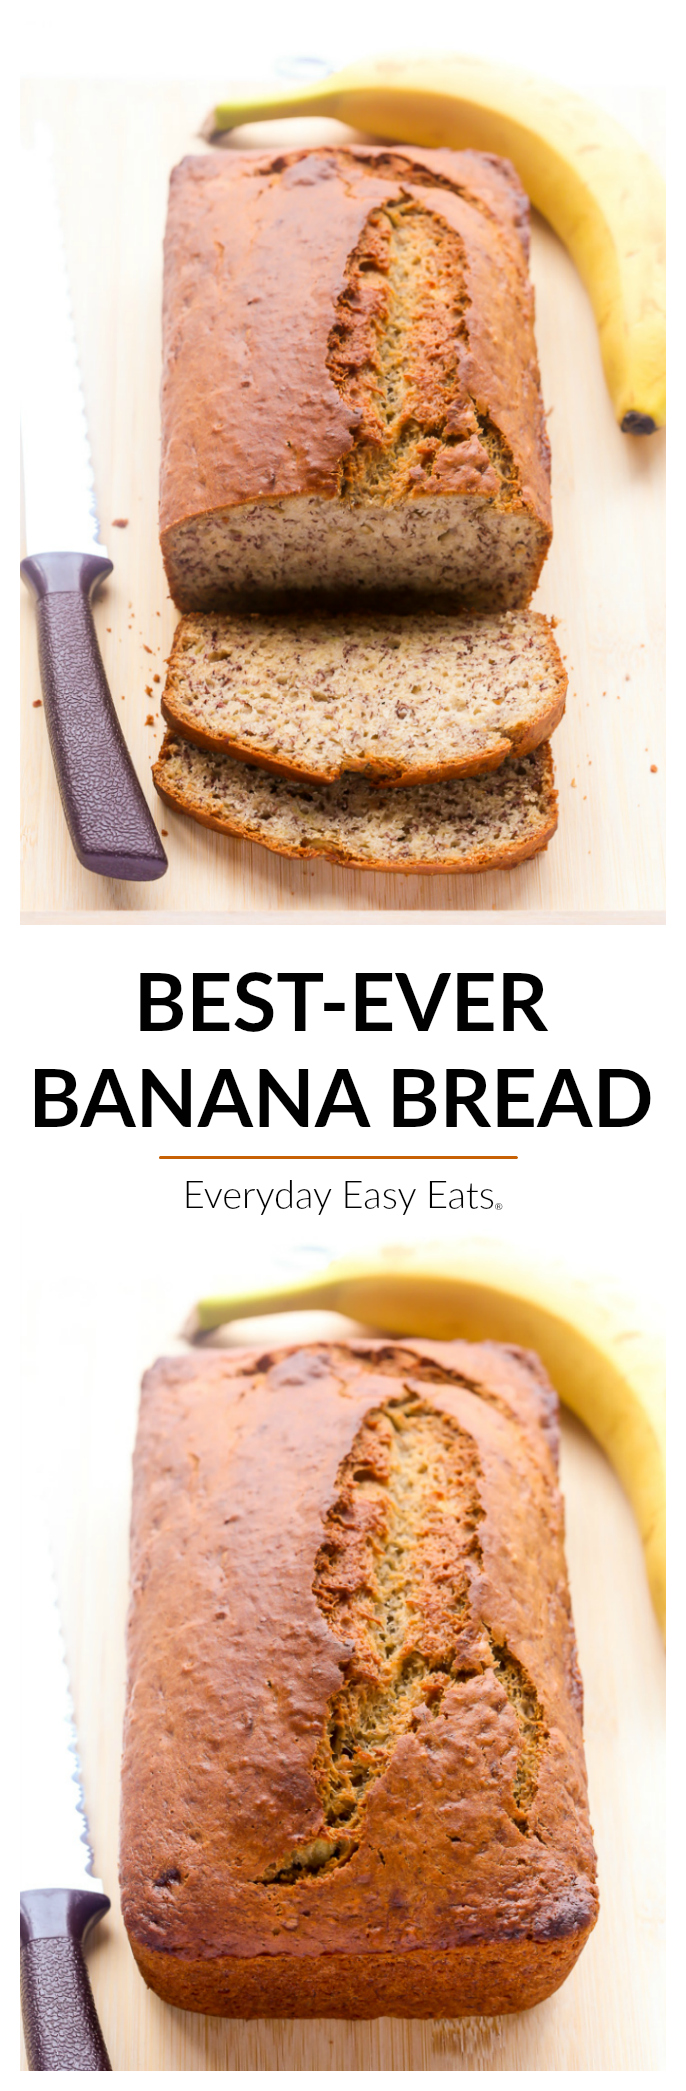 Best ever banana bread everyday easy eats everyday easy eats all photos and content are copyright protected please do not use any of my recipes text or images without prior permission forumfinder Images